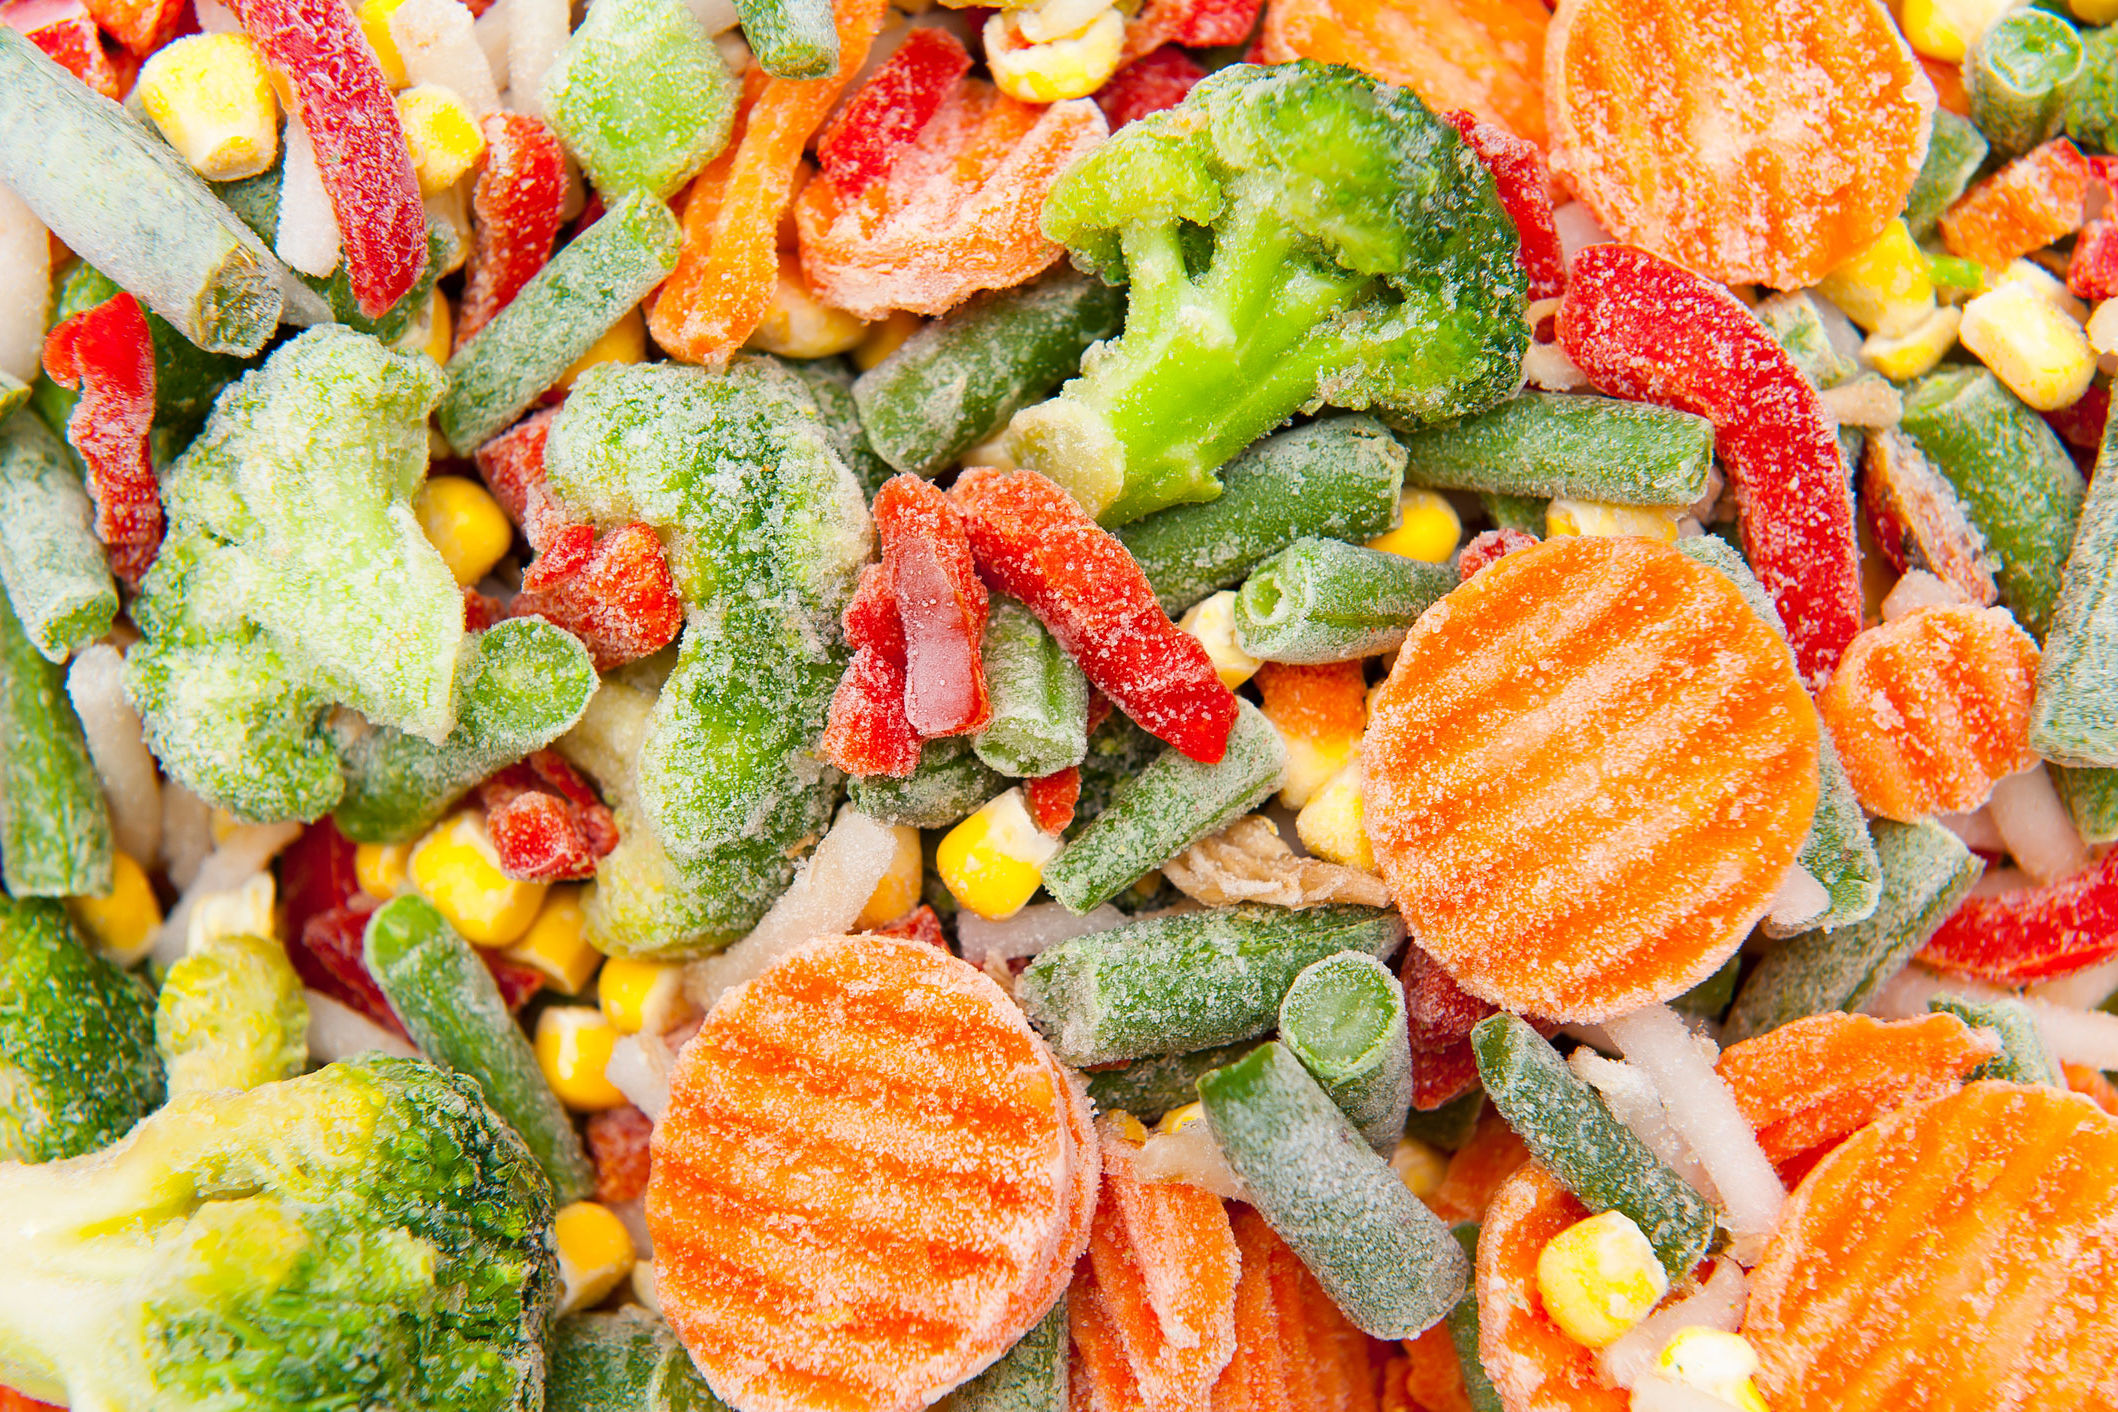 Frozen-Mixed-Vegetables.jpg